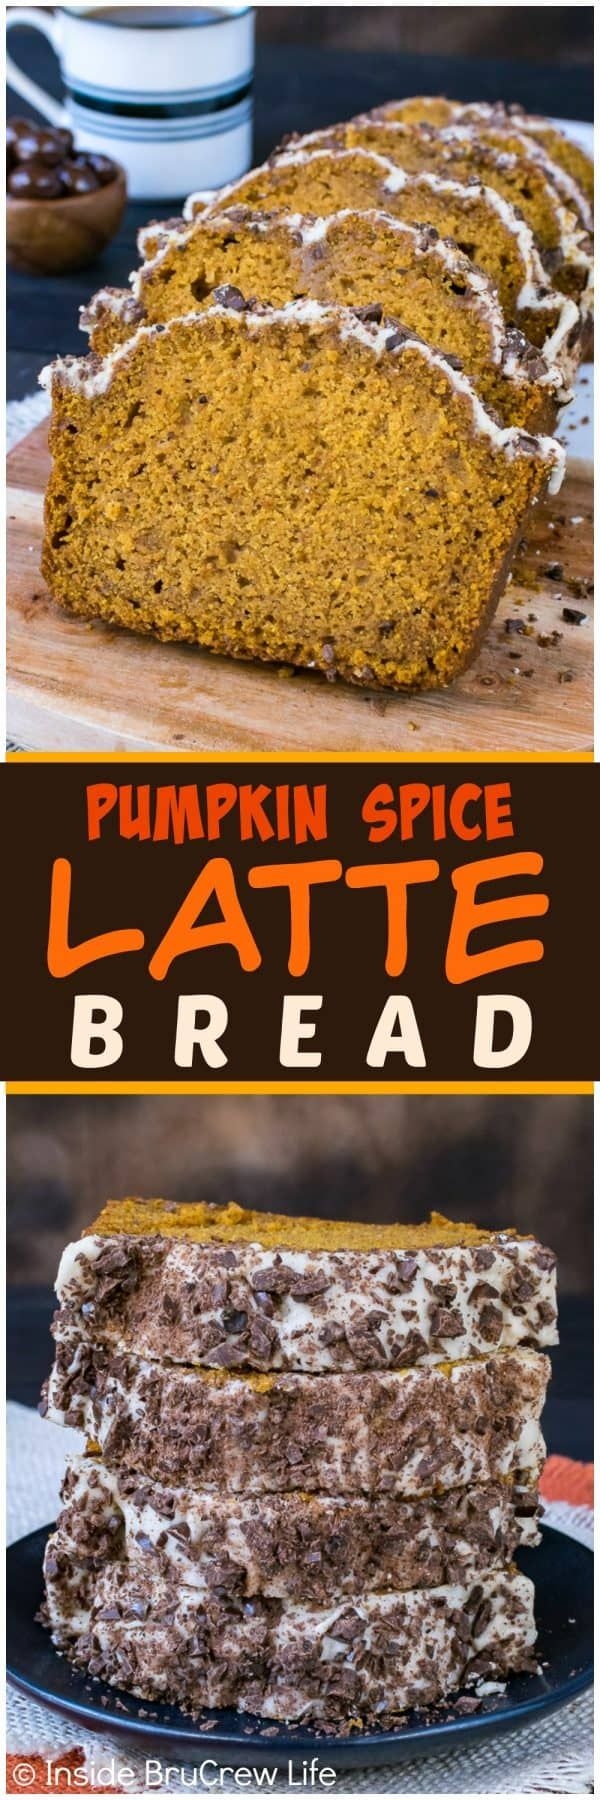 Pumpkin Spice Latte Bread Recipe - with chopped up chocolate covered coffee beans on glazing